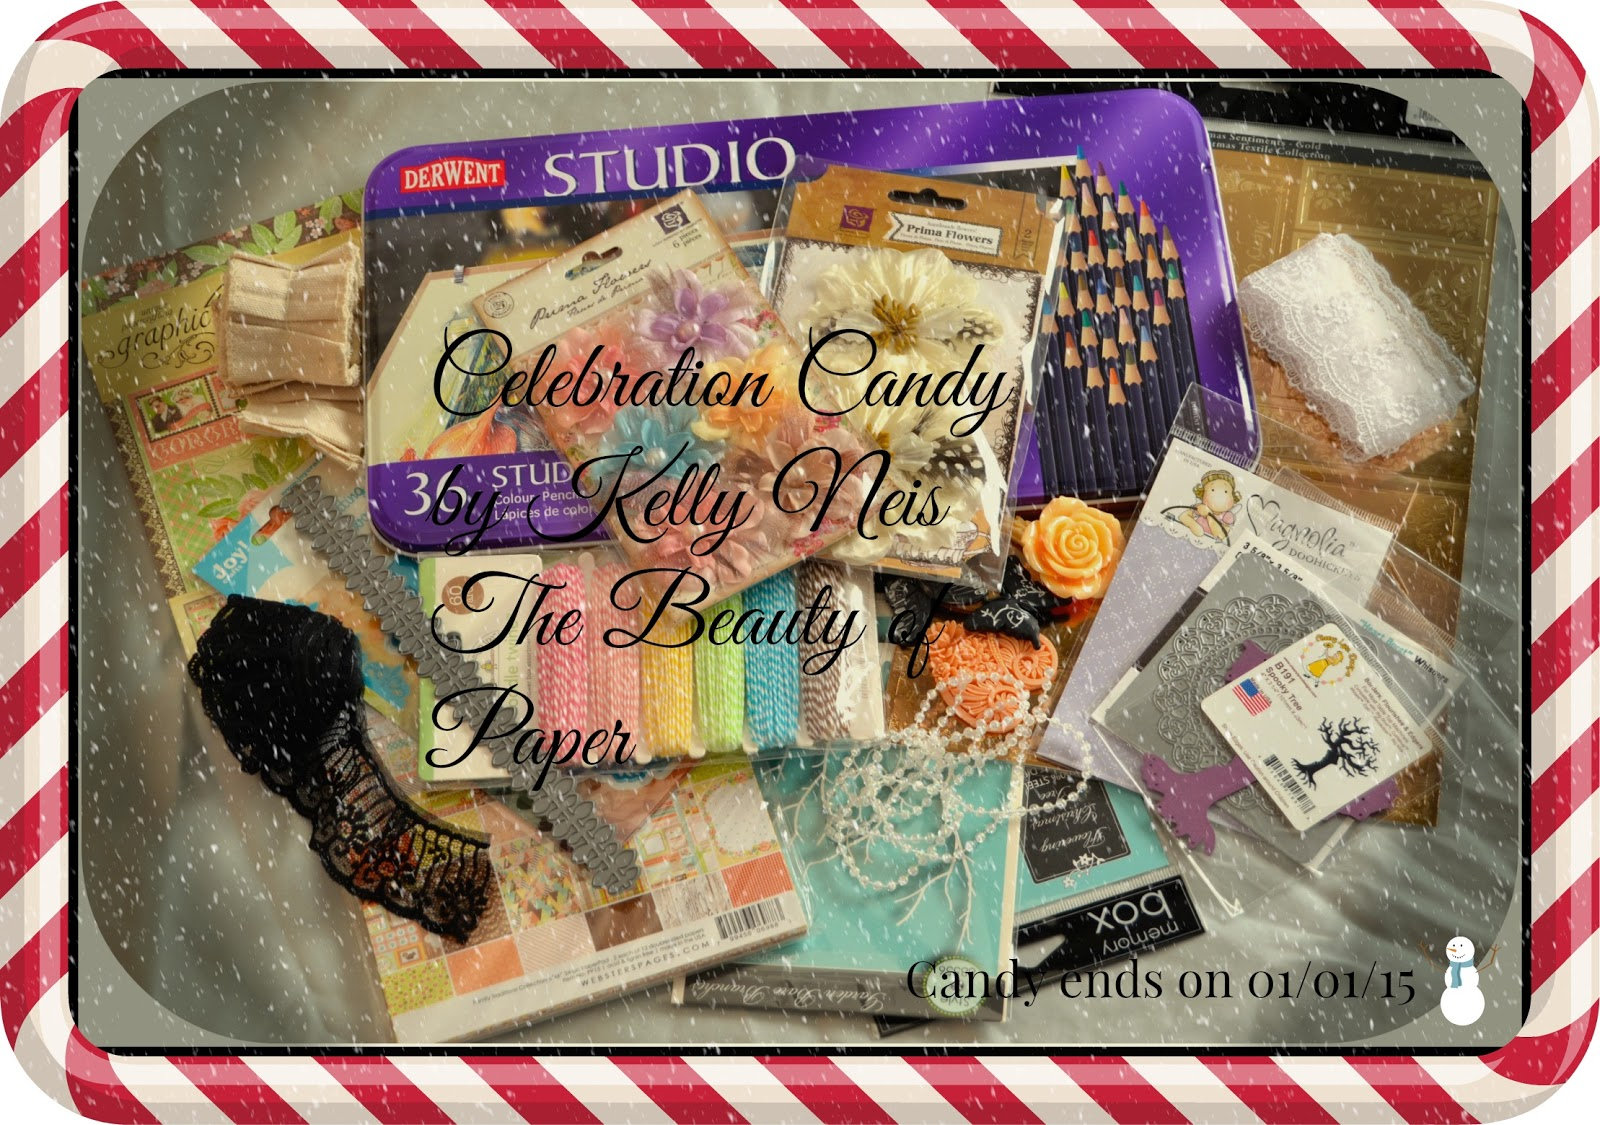 Celebration Candy by Kelly Neis